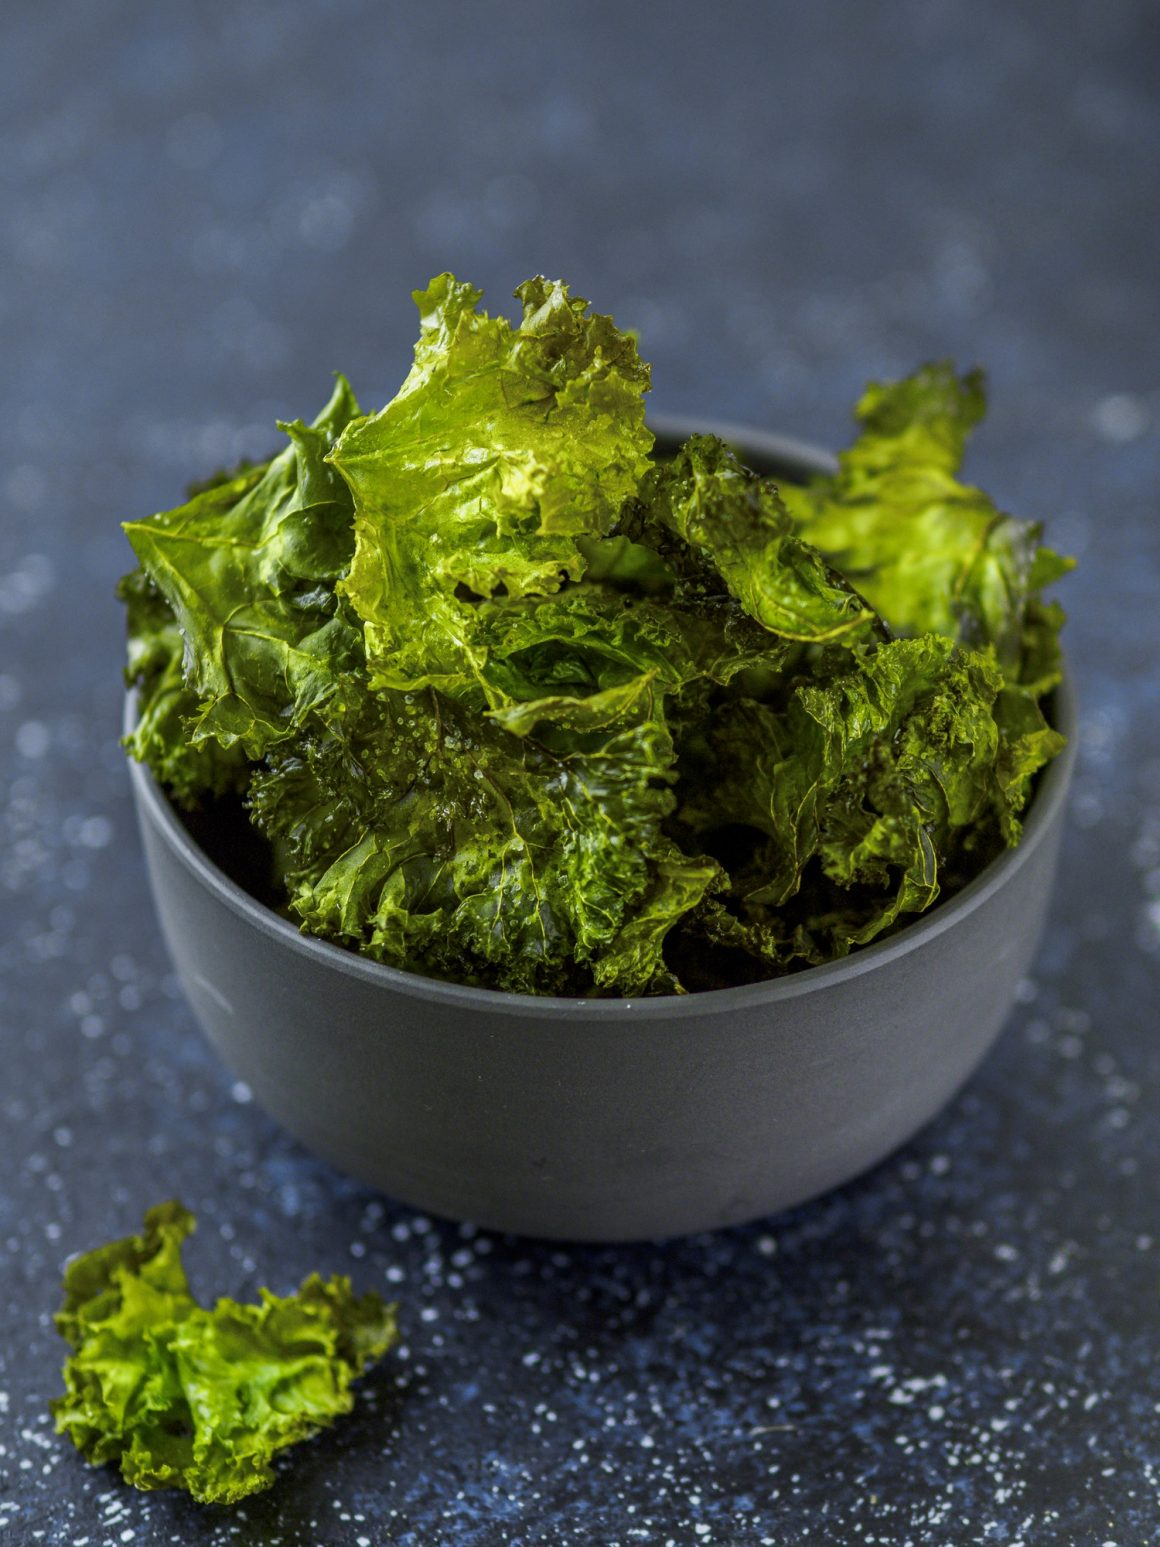 Kale Chips ready-to-eat, vertical